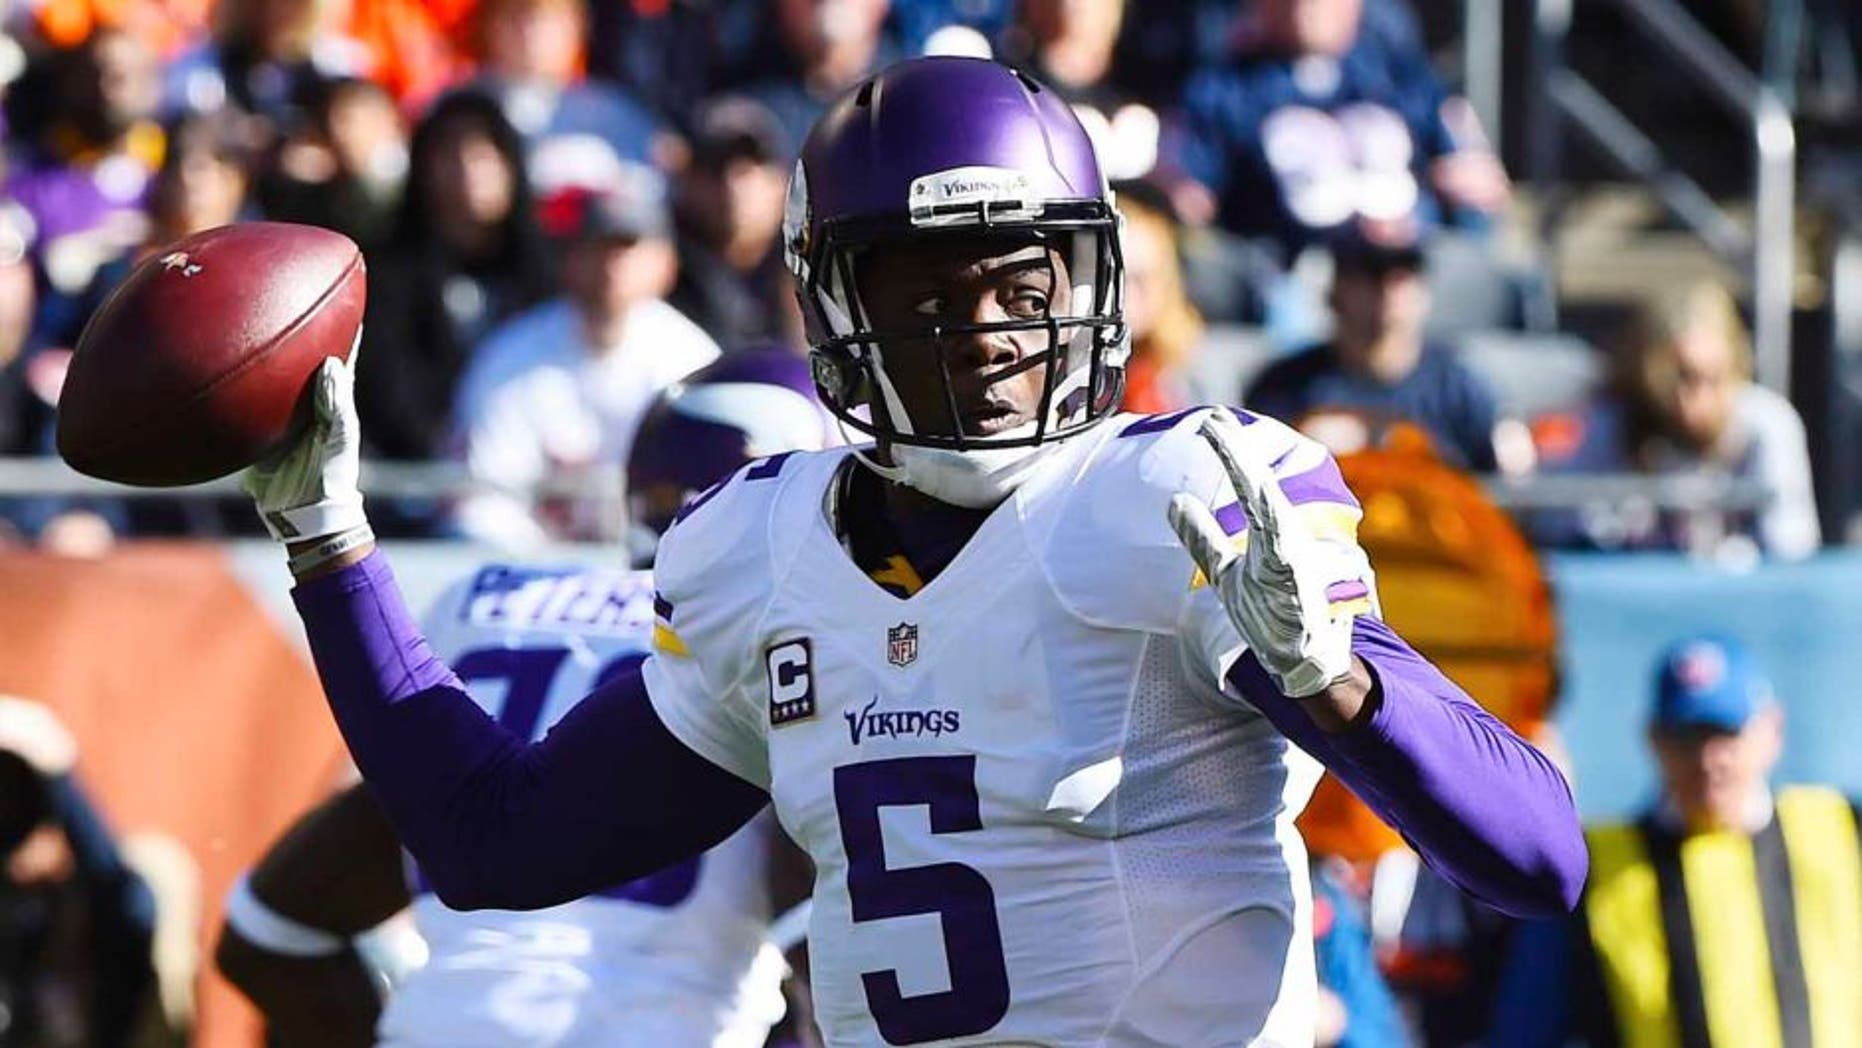 Minnesota Vikings quarterback Teddy Bridgewater throws the ball against the Chicago Bears during the first quarter at Soldier Field in Chicago on Sunday, Nov. 1, 2015.